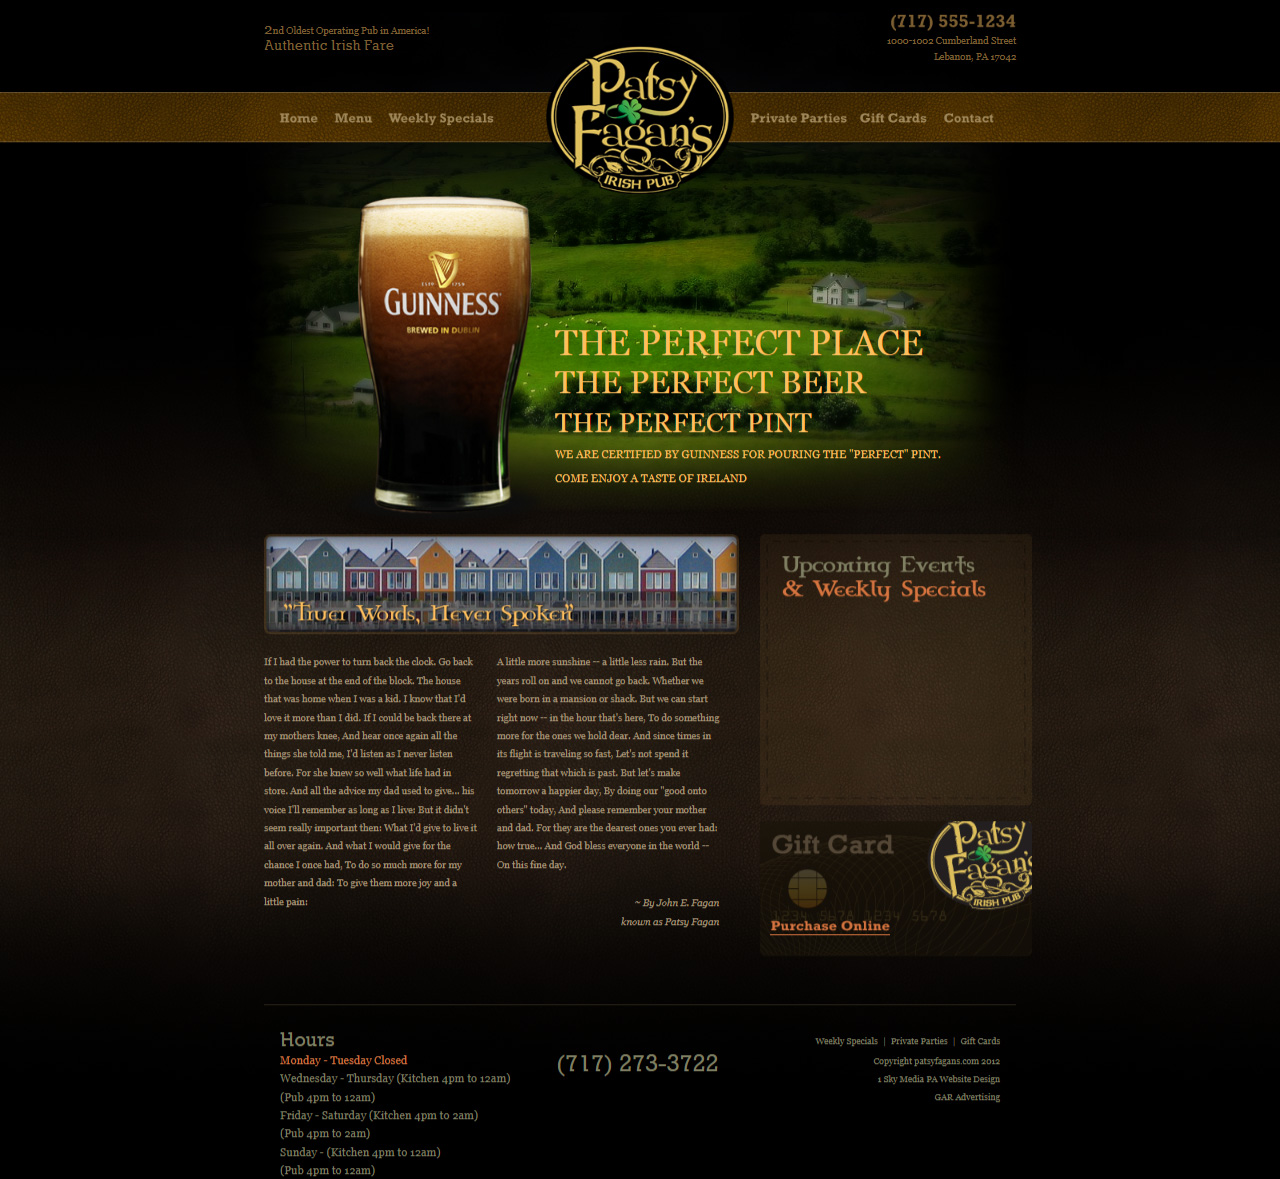 Patsy Fagan Irish Pub website design